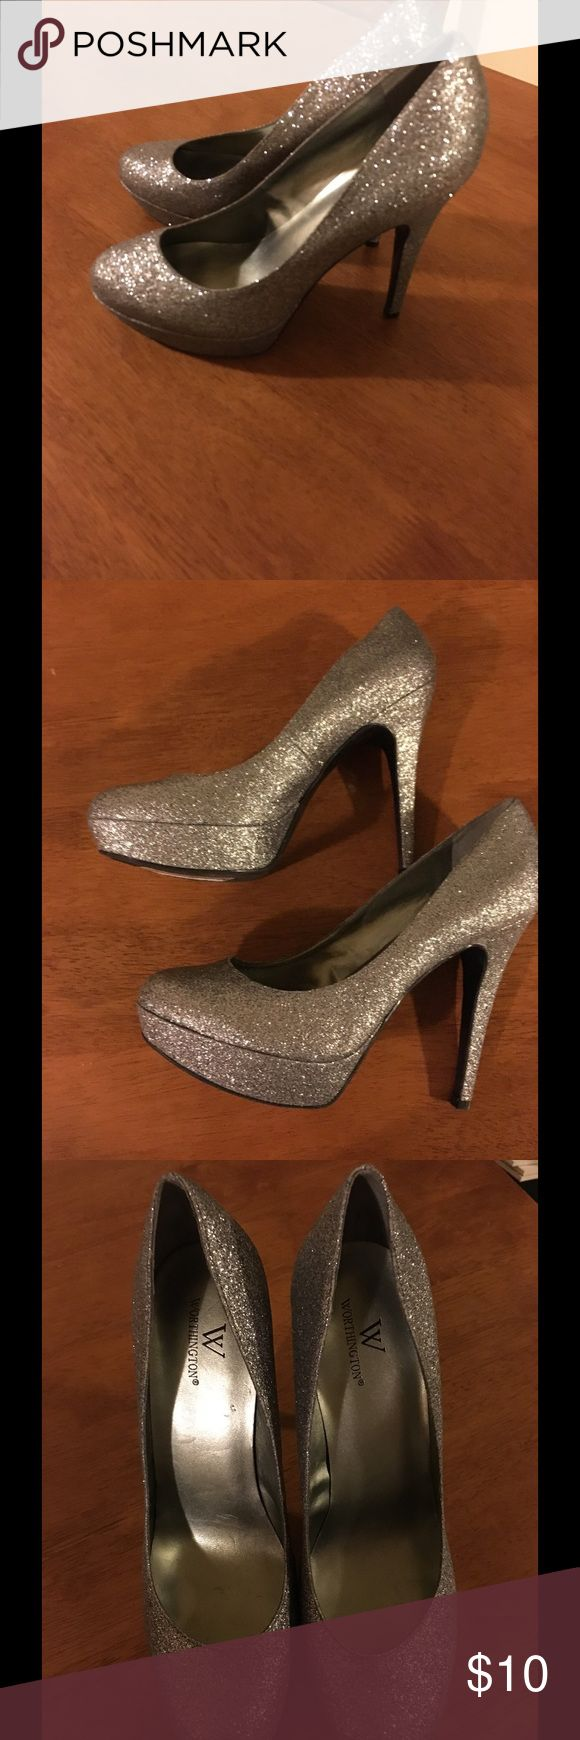 Worthington Size 9.5 Silver Glitter Heels Bought at Clothes Mentor but too small.  I can't get sticker off bottom but shoes are excellent condition!   Worthington silver glitter heels.  Size 9.5.  Important:   All items are freshly laundered as applicable prior to shipping (new items and shoes excluded).  Not all my items are from pet/smoke free homes.  Price is reduced to reflect this!   Thank you for looking! Worthington Shoes Heels